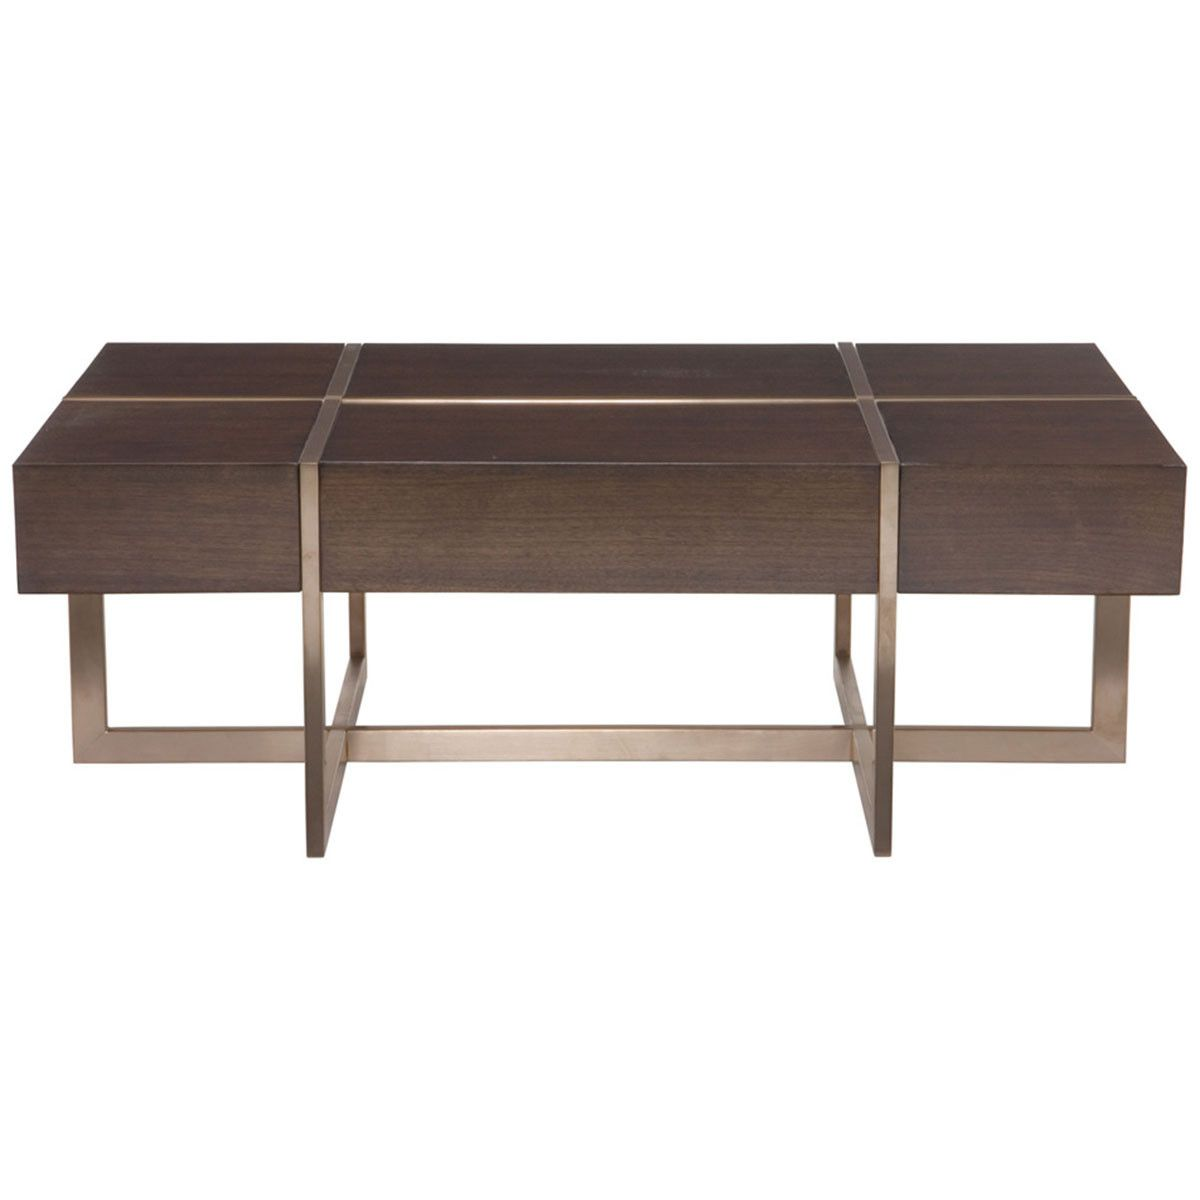 Milan Coffee Table Coffee Console And End Live Products Lh Imports Coffee Table Round Wood Coffee Table Large Coffee Tables [ 711 x 1200 Pixel ]